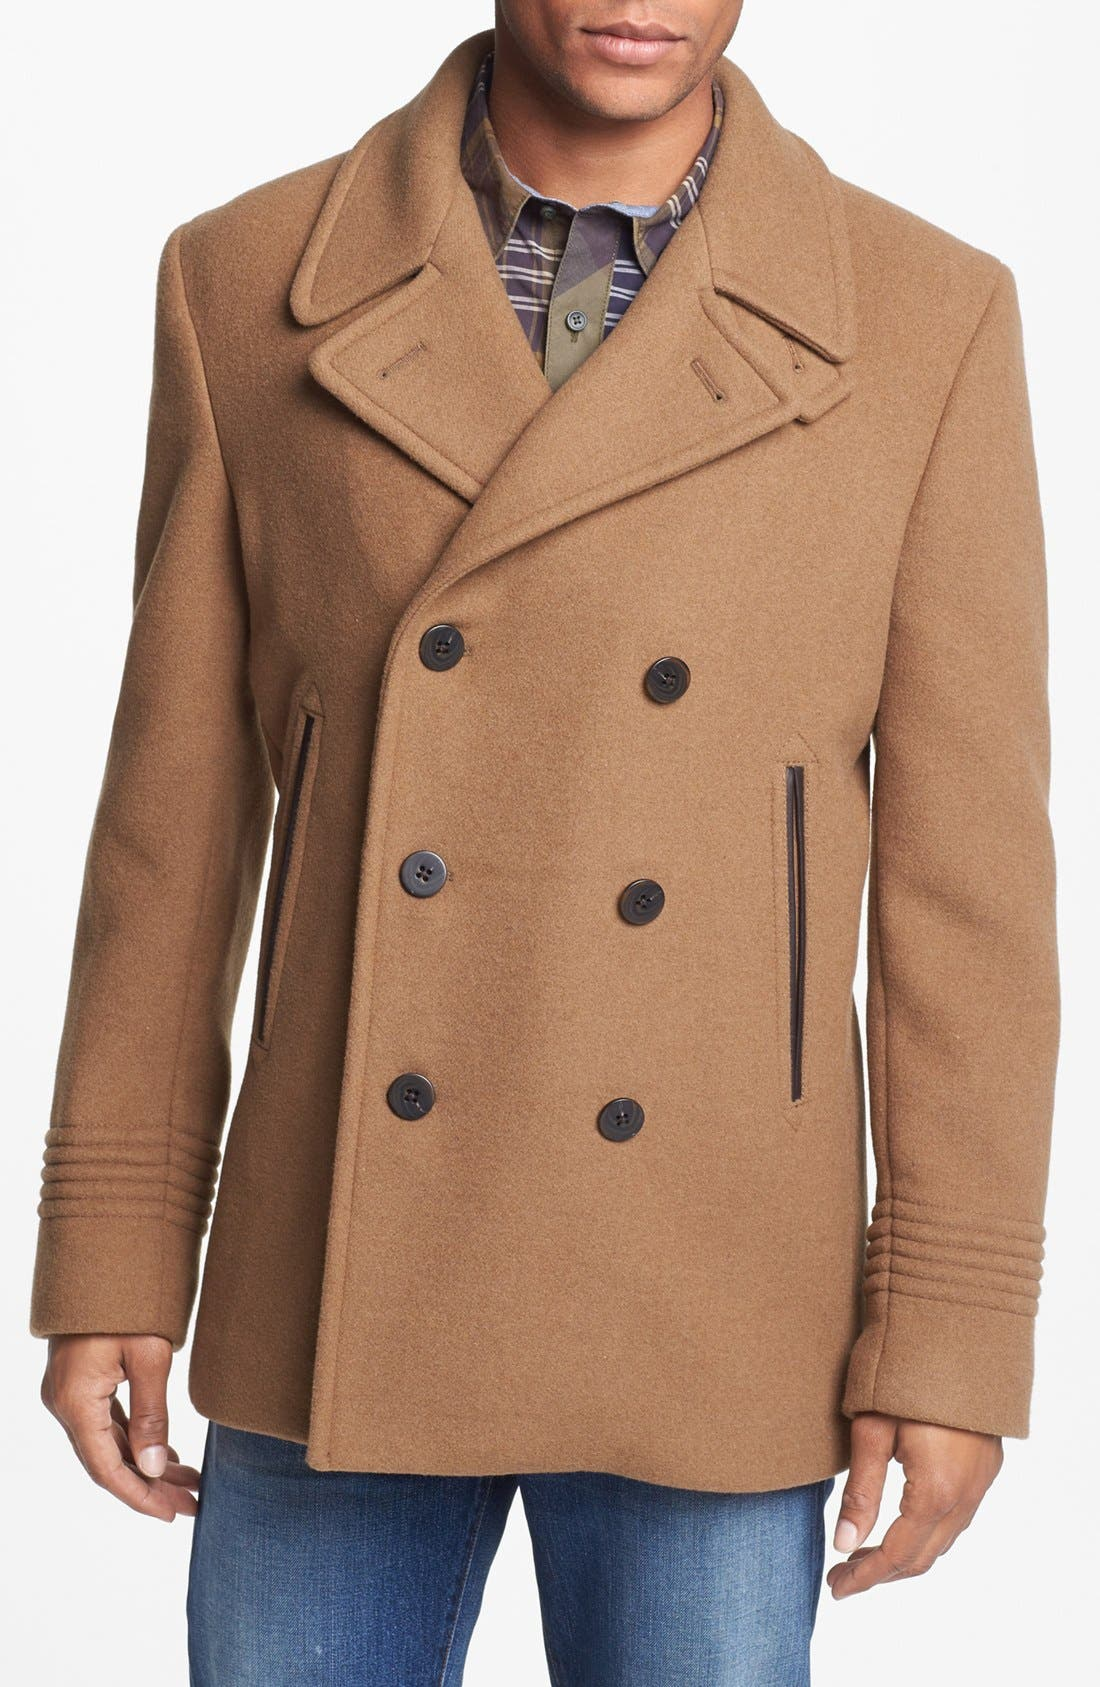 Main Image - MARC BY MARC JACOBS 'Rushmore' Double Breasted Wool Blend Peacoat